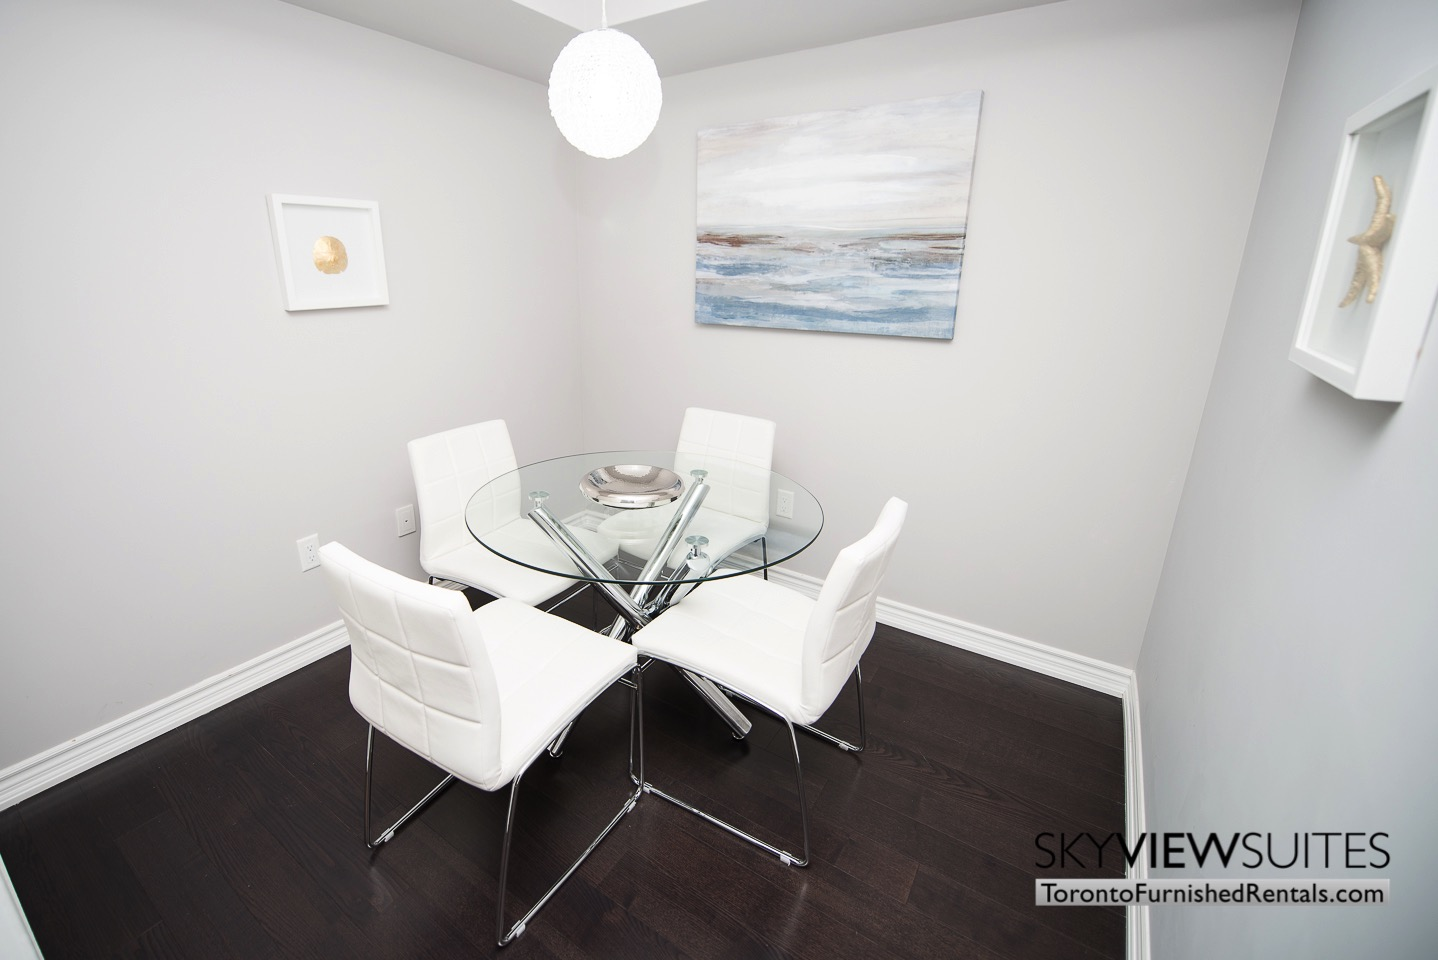 furnished-rentals-toronto-kitchen-college